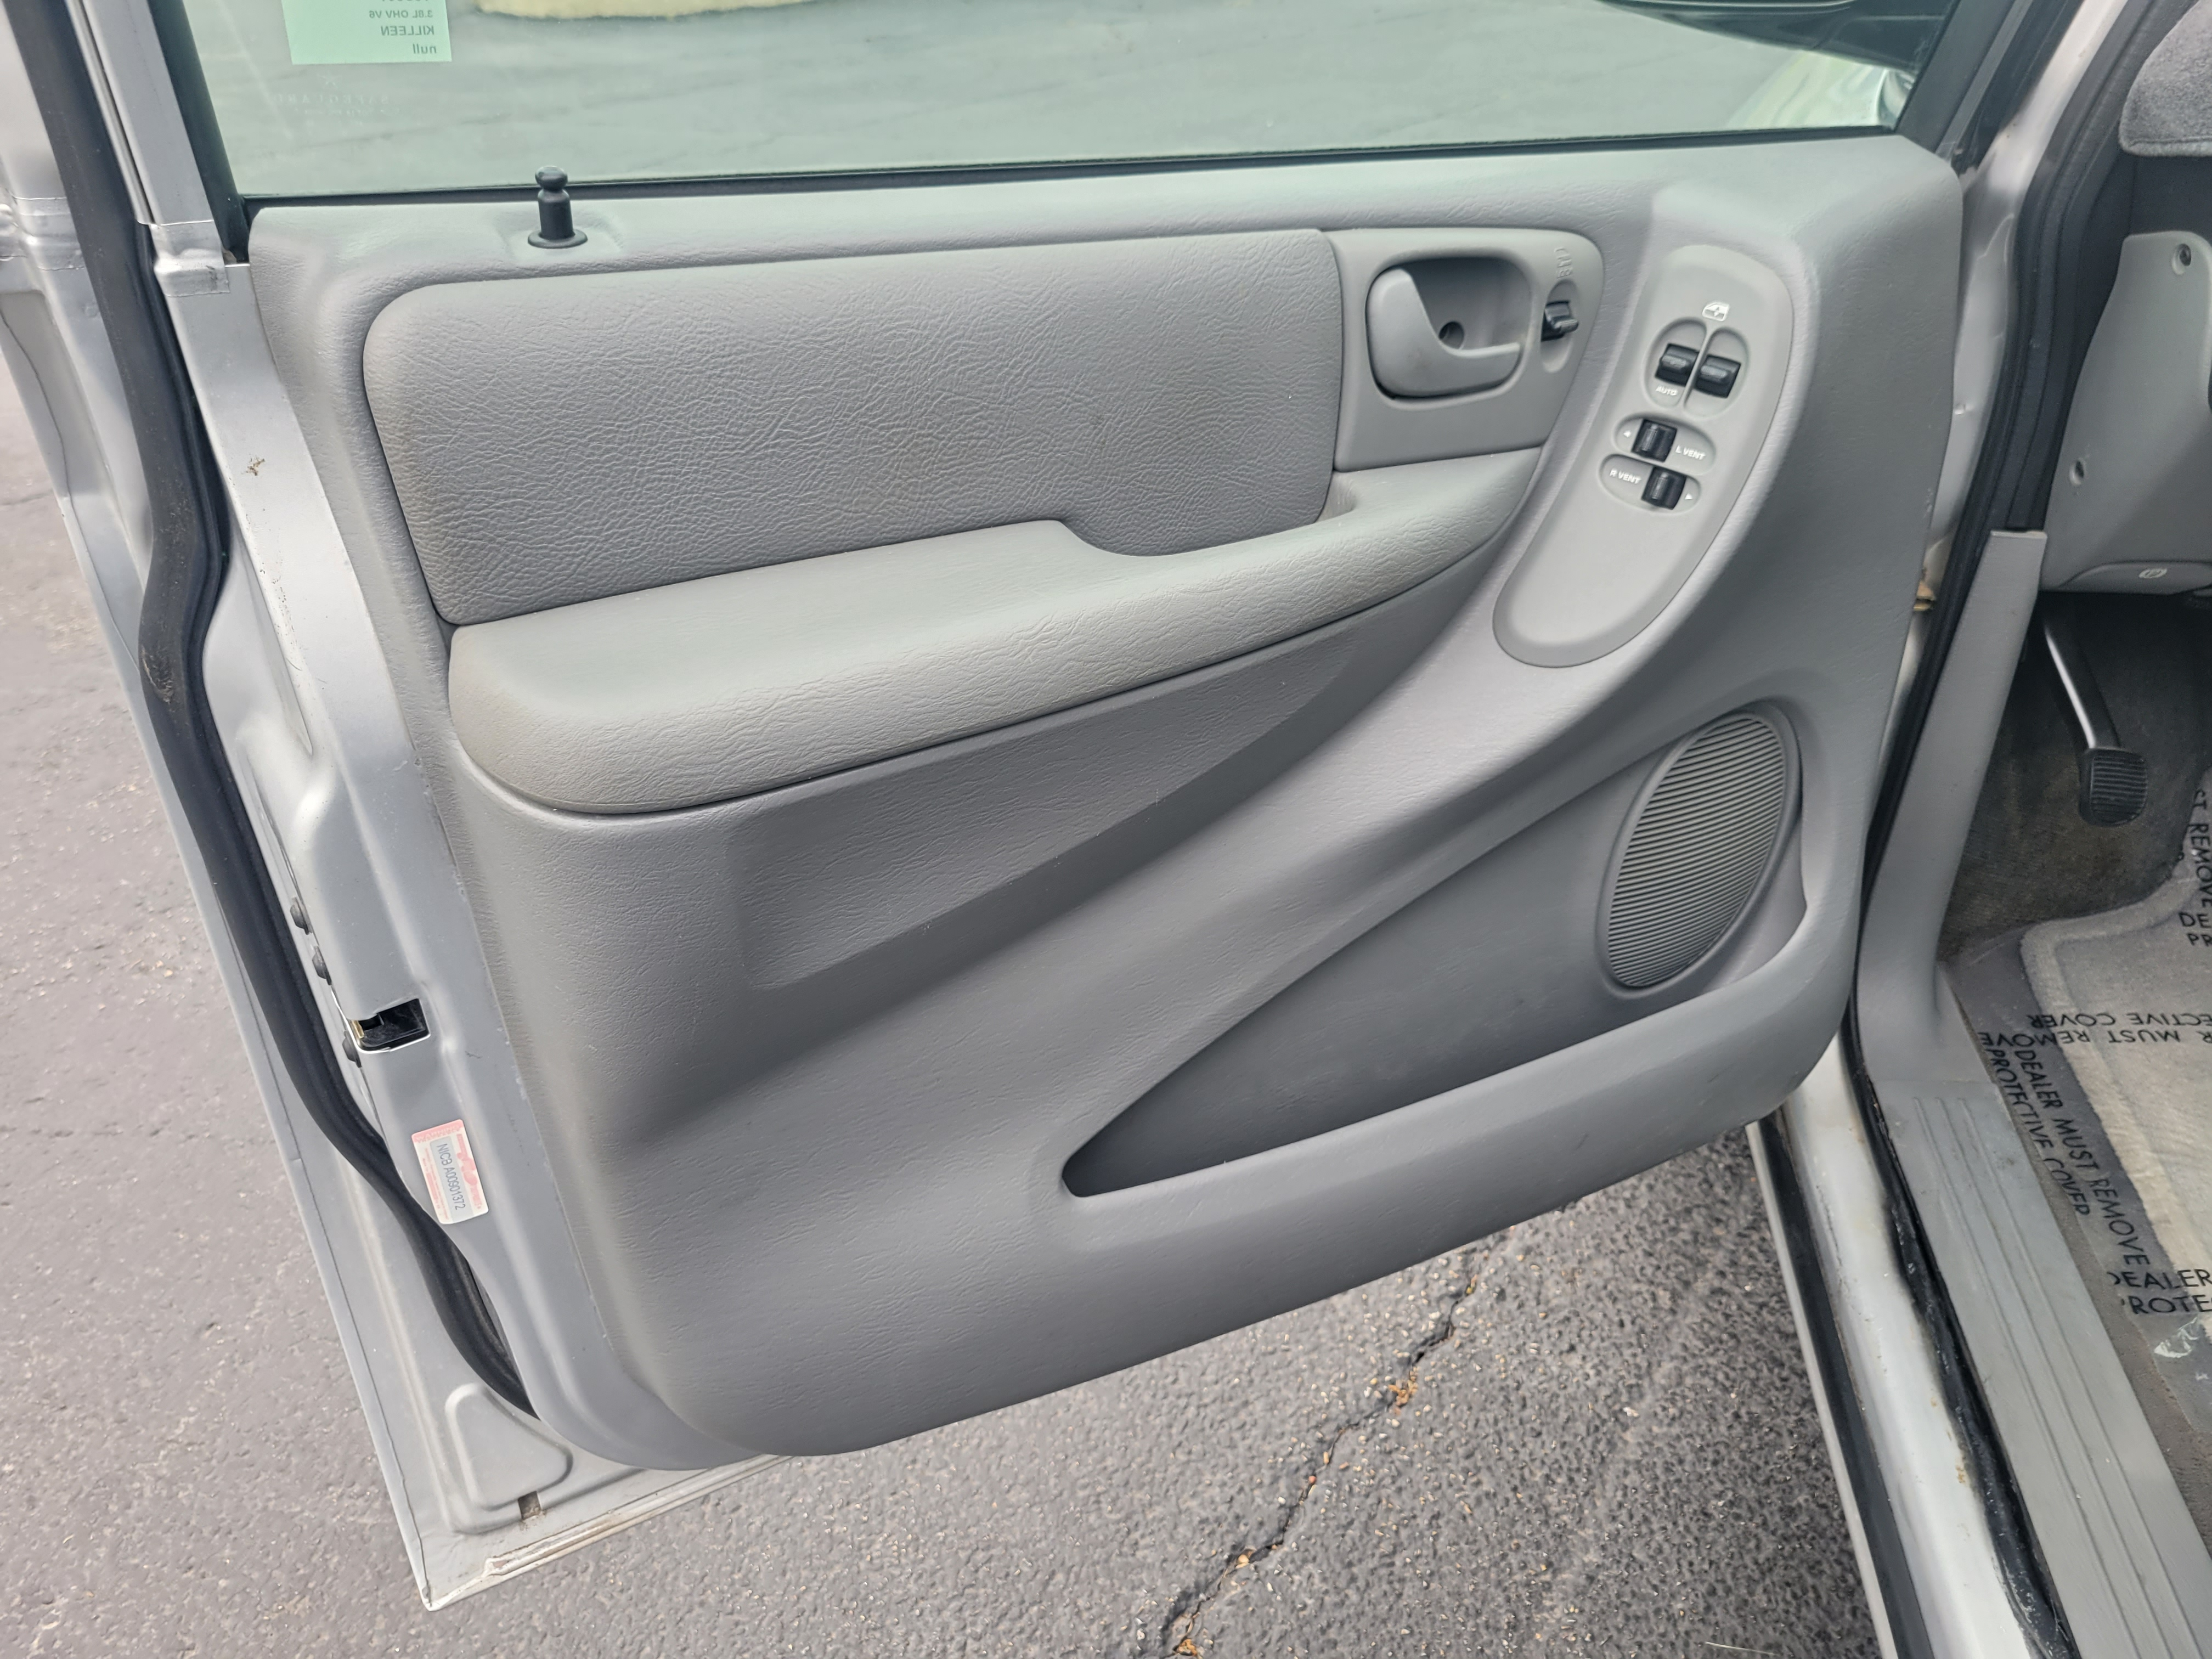 used vehicle - Passenger Van CHRYSLER TOWN AND COUNTRY 2004